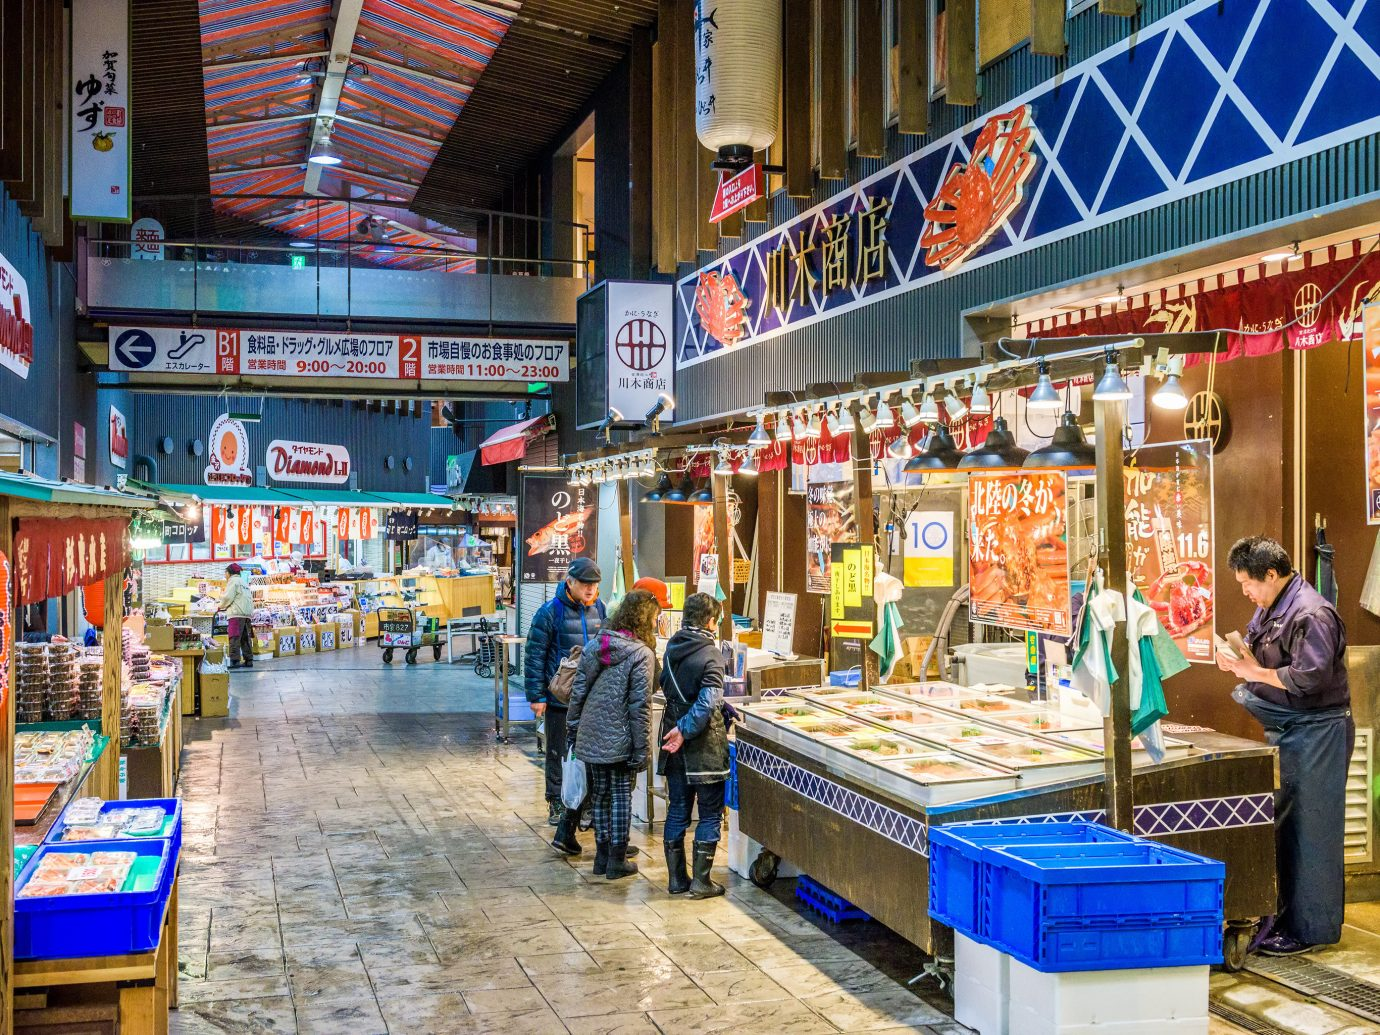 Japan Trip Ideas marketplace market public space bazaar retail City stall shopping grocery store supermarket vendor grocer street convenience store produce